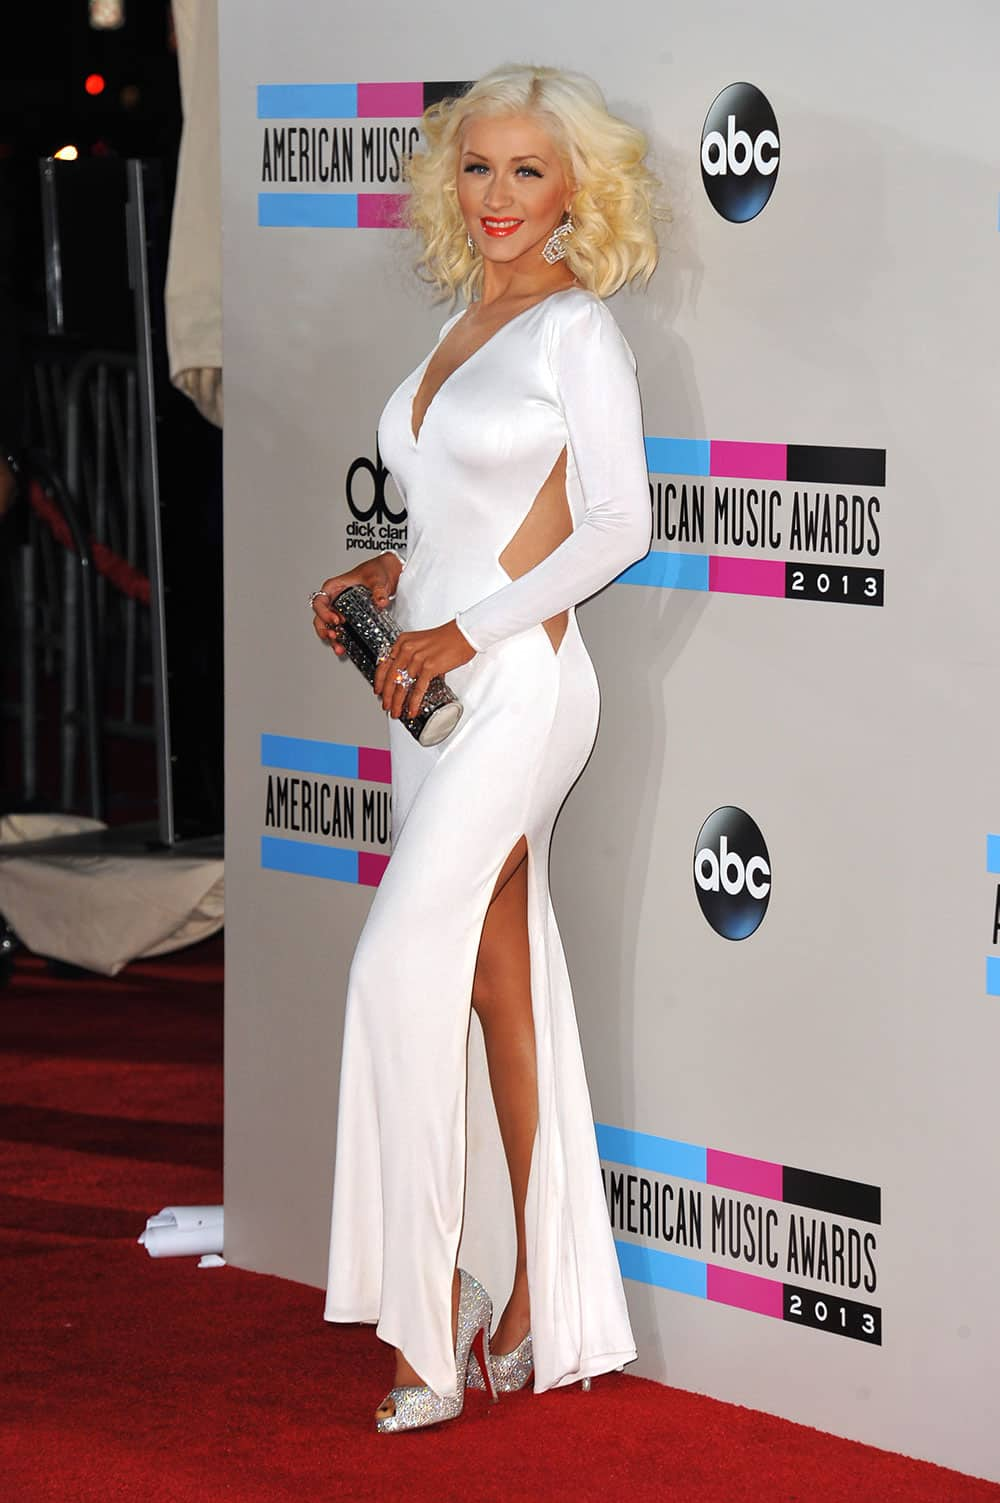 Christina Aguilera arrives at the American Music Awards at the Nokia Theatre L.A.